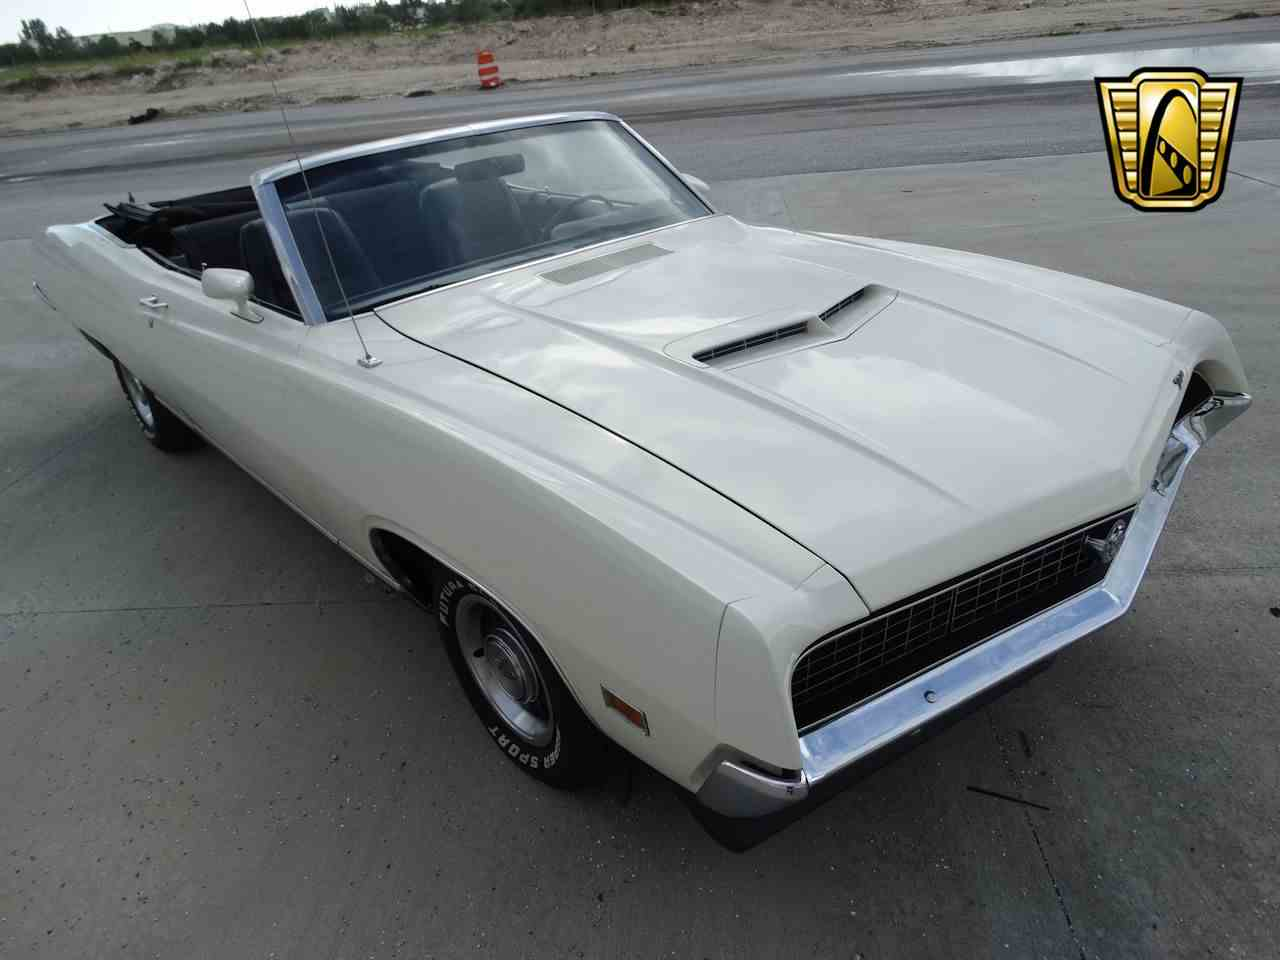 Large Picture of Classic 1971 Ford Torino Offered by Gateway Classic Cars - Fort Lauderdale - LG4B